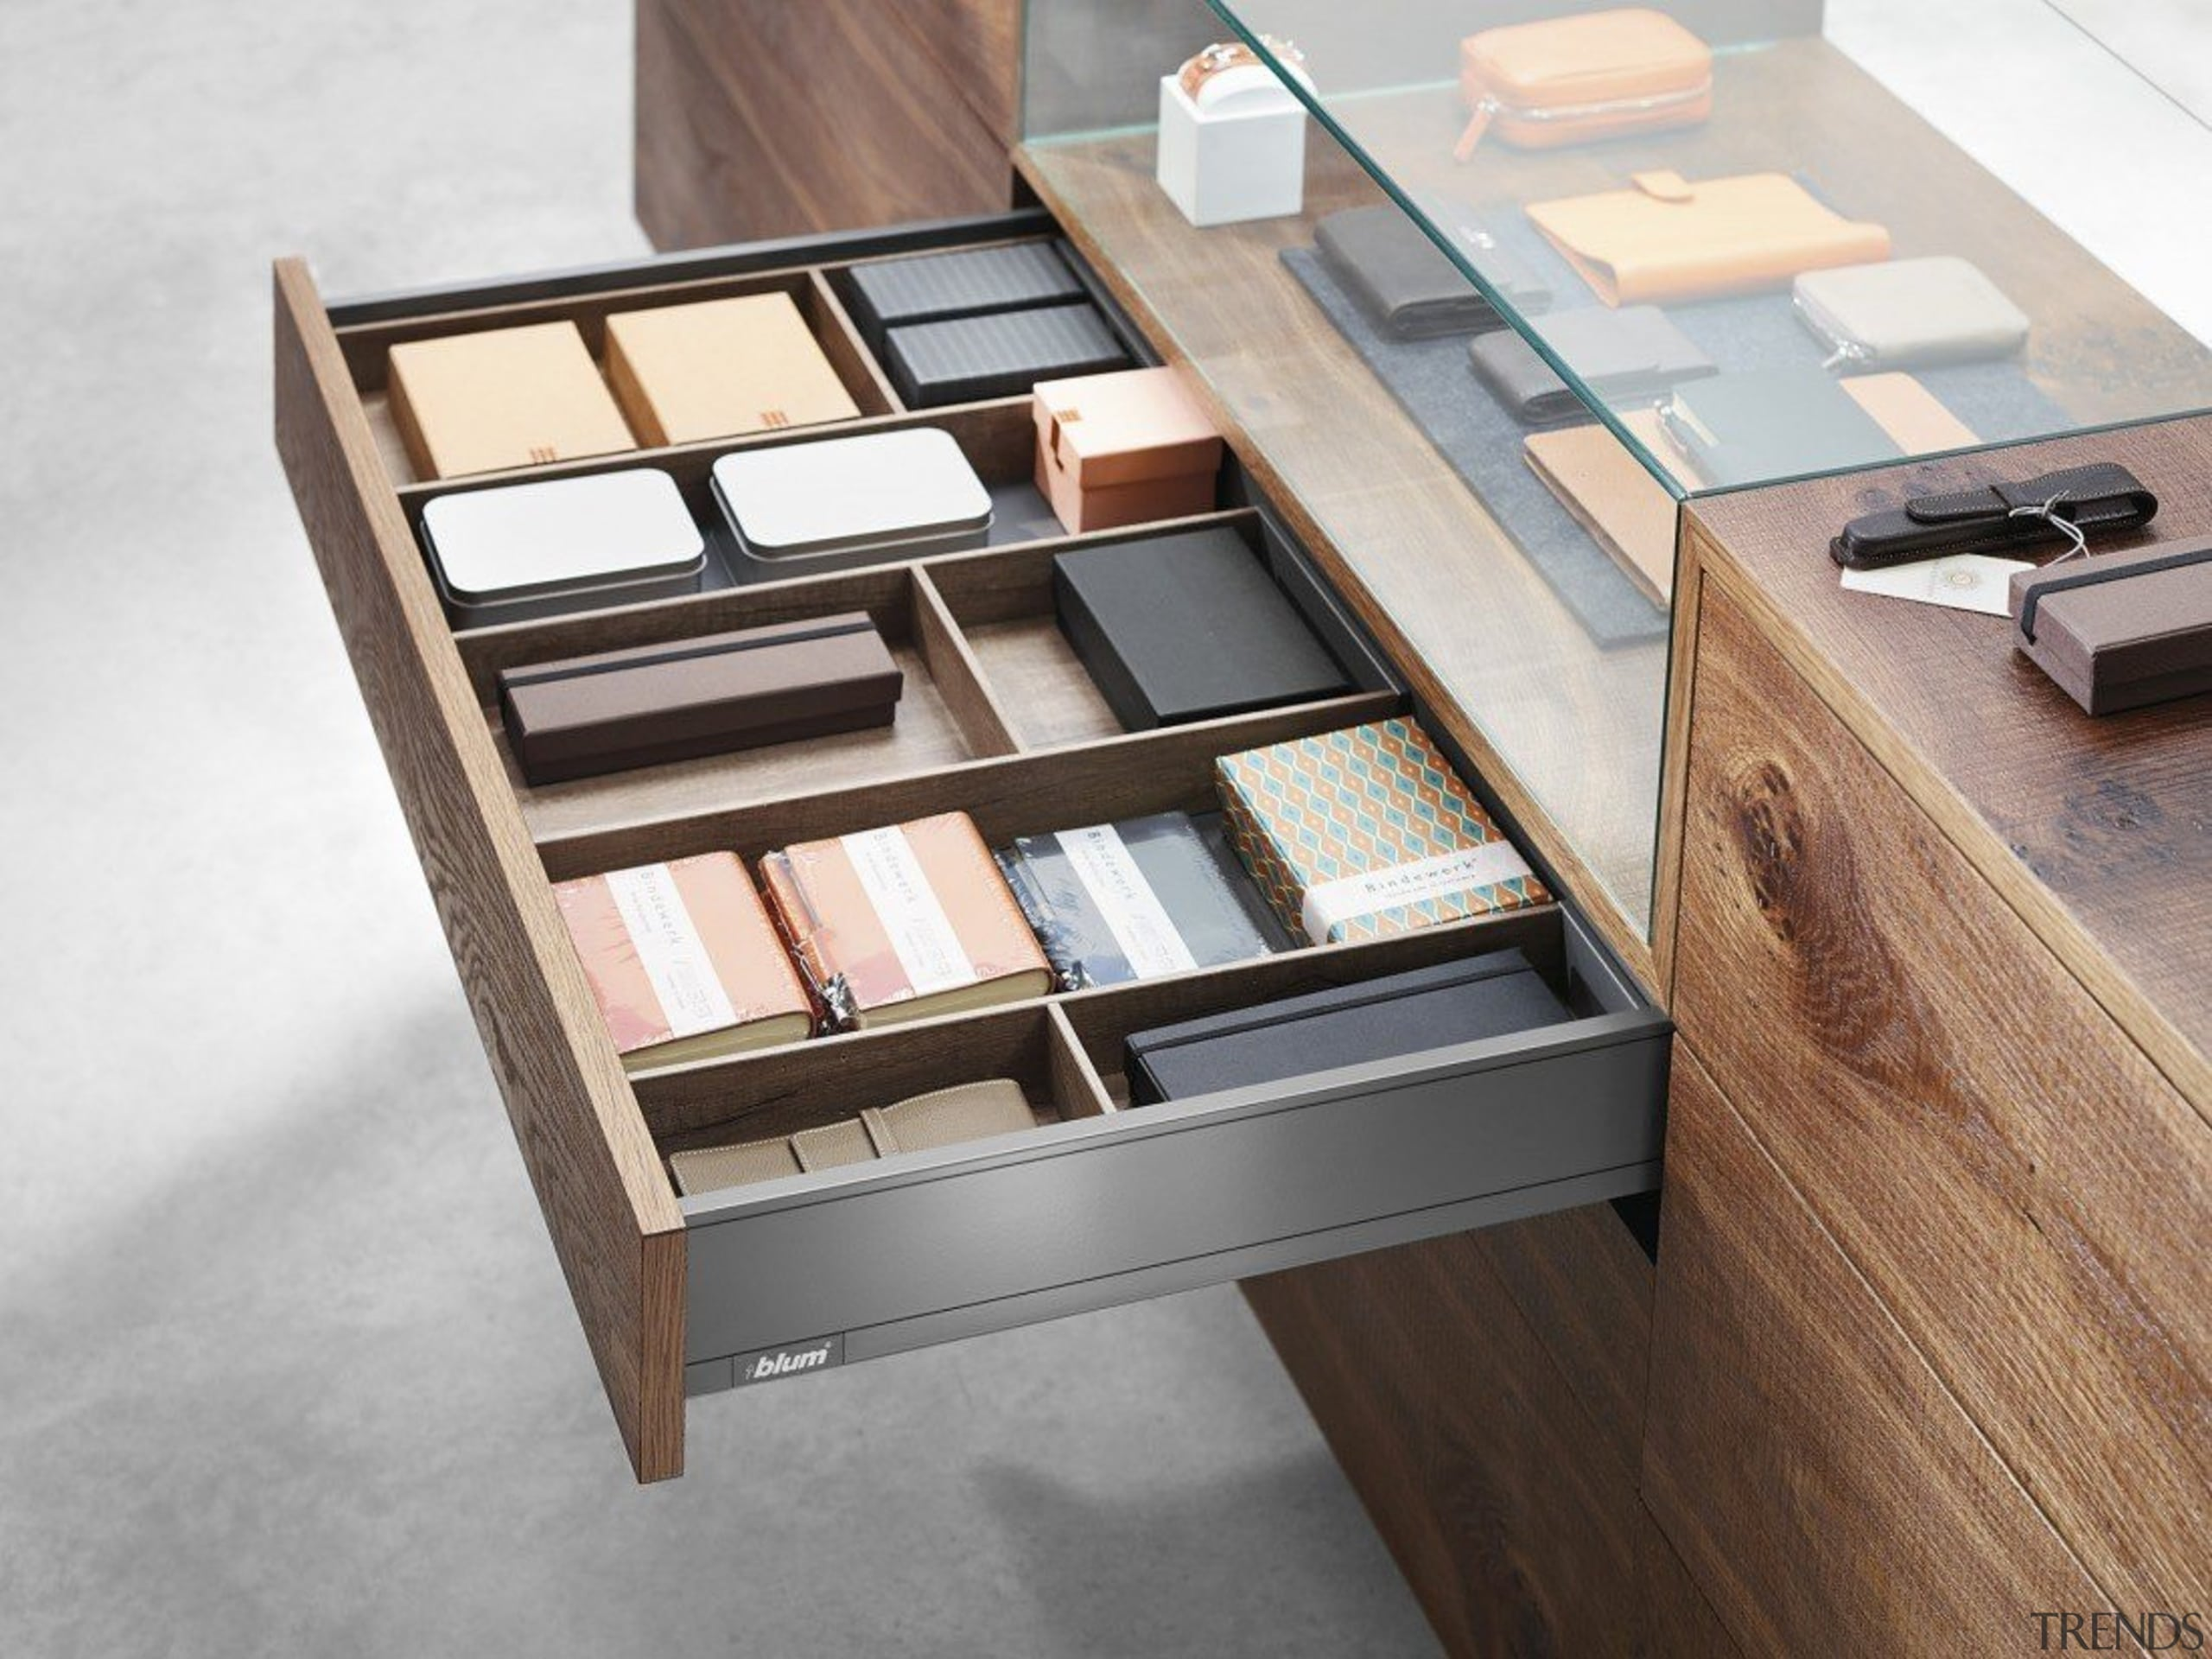 AMBIA-LINE inner dividing system – organization at its drawer, furniture, product, product design, table, white